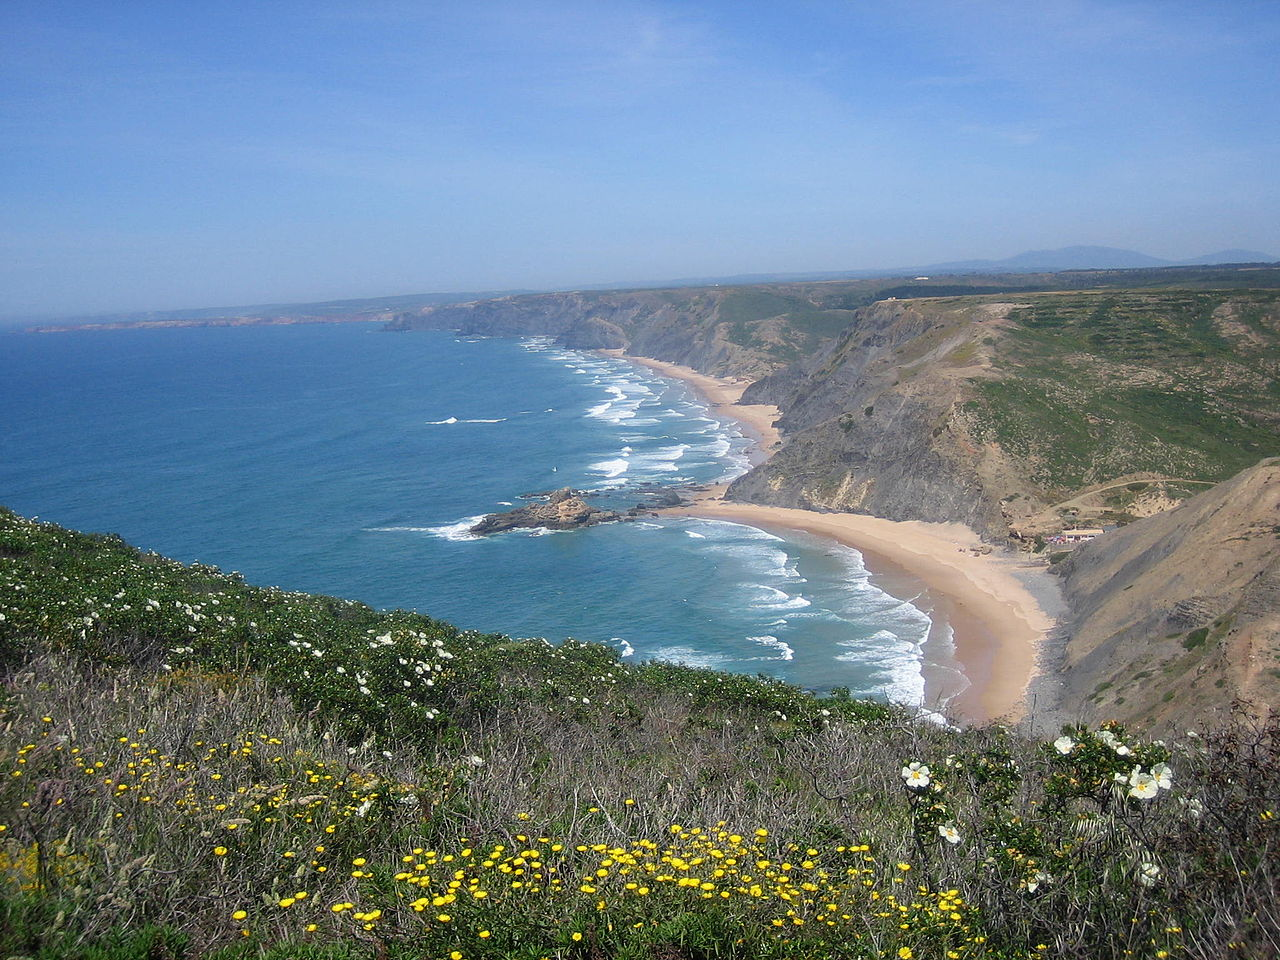 Portuguese national ranger meeting   30. january – 2. february 2020 at Parque Natural do Sudeste Alentejo e Costa Vicentina